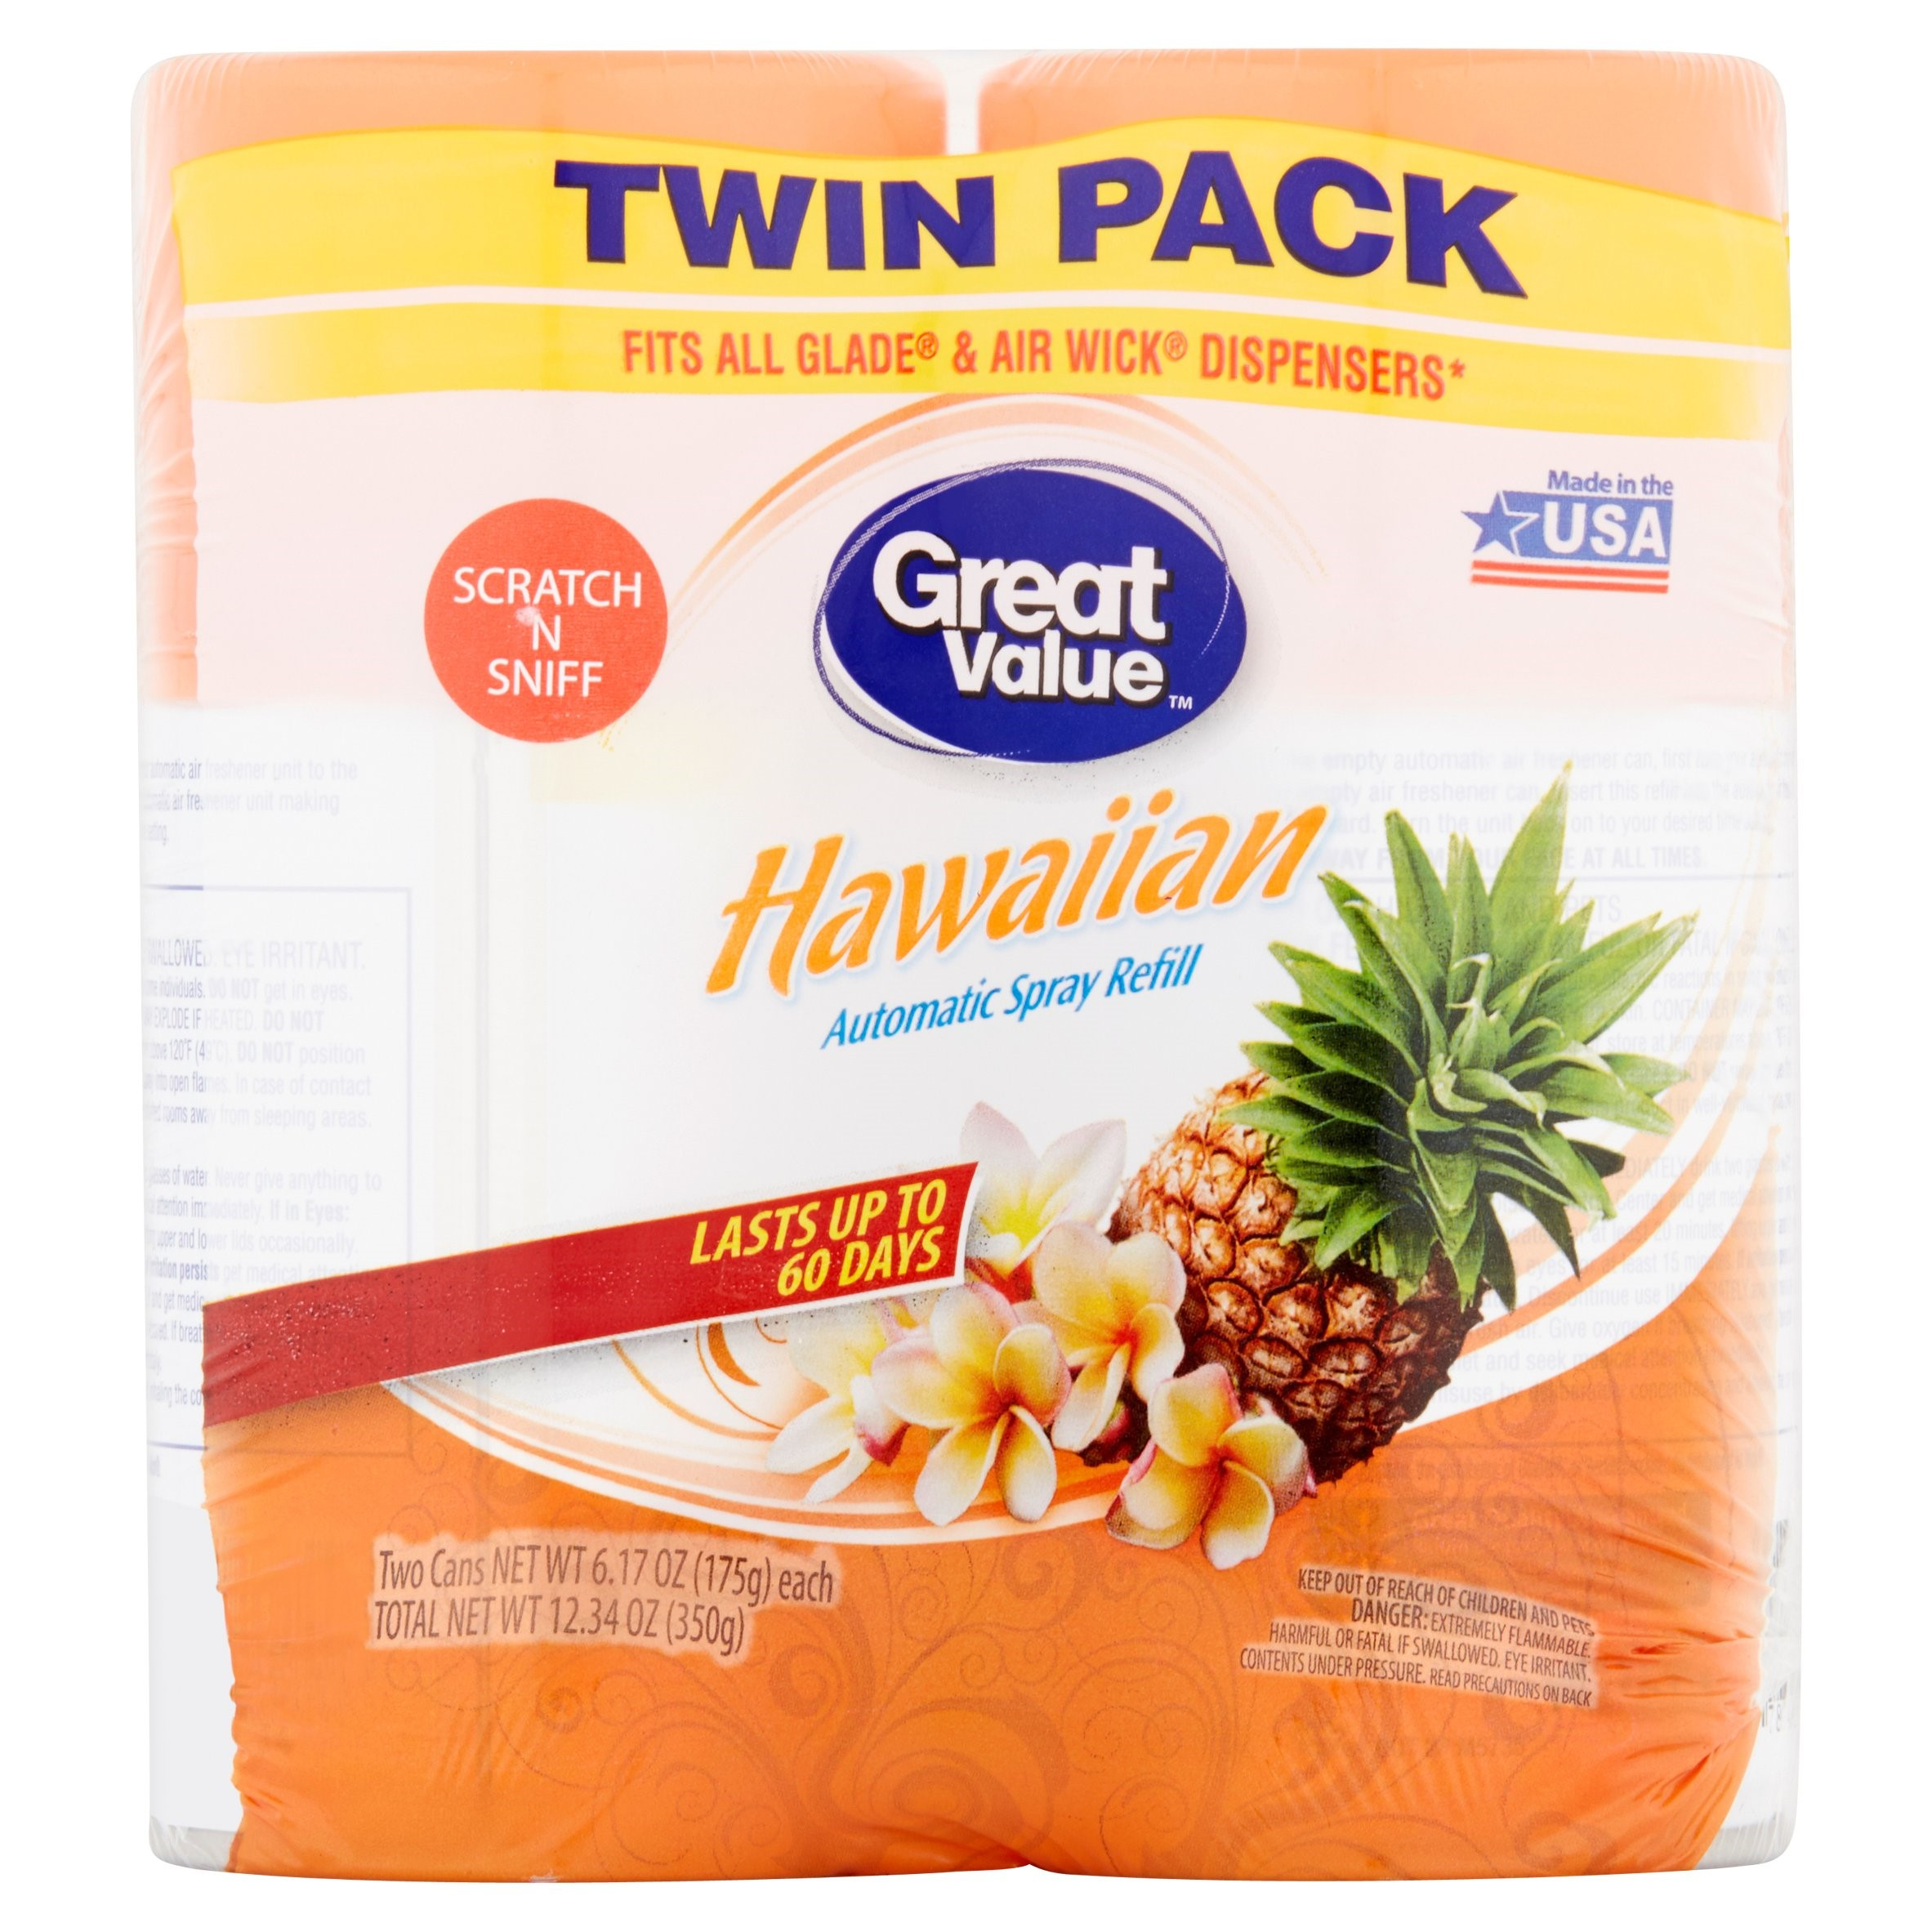 Great Value Automatic Spray Refill Twin Pack, Hawaiian Scent, 12.34 oz, 2 Count